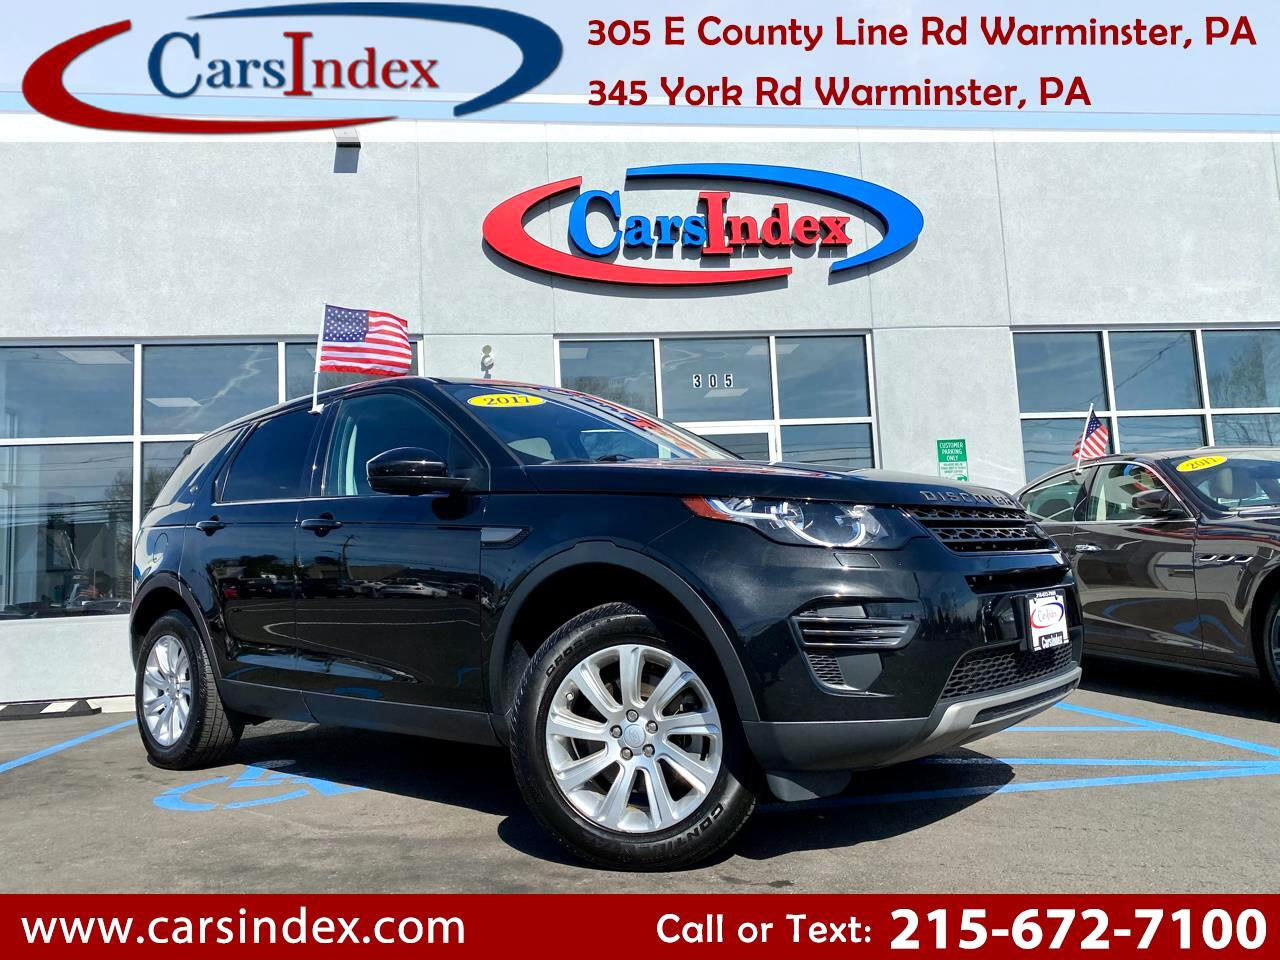 Used Land Rover Discovery Sport Warminster Pa